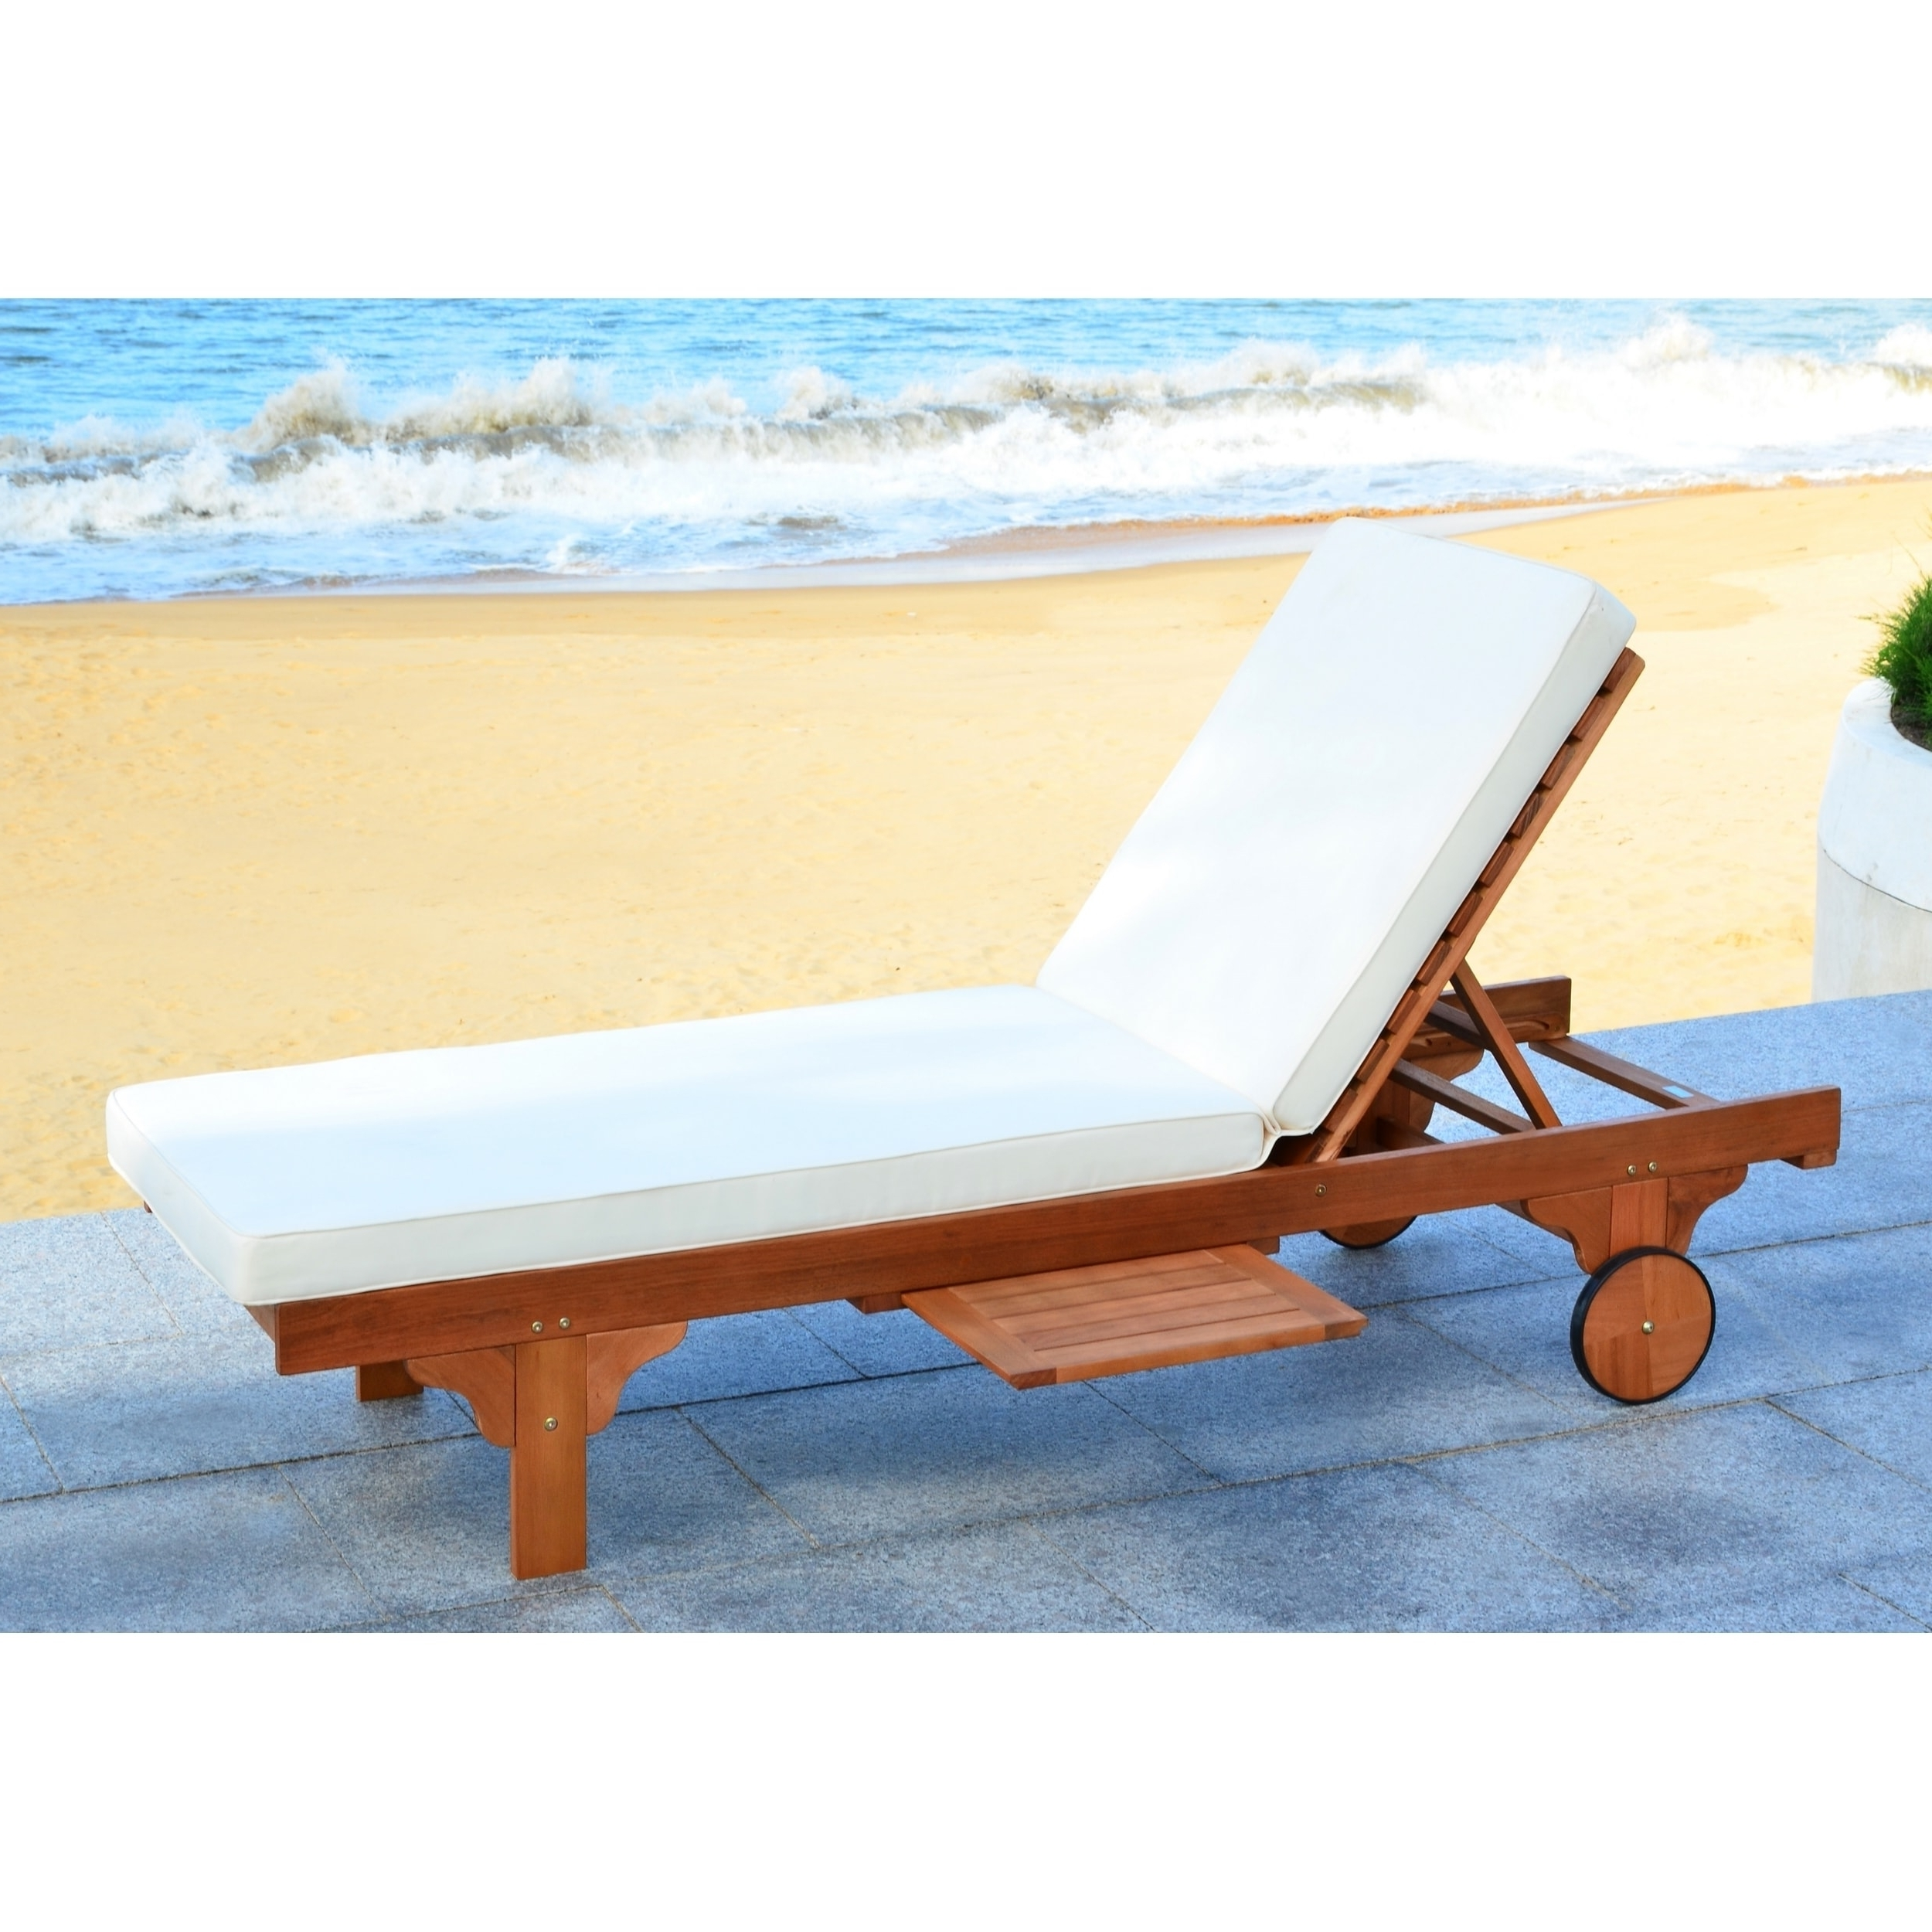 Safavieh Outdoor Living Newport Brown/ Beige Adjustable Chaise With Regard To Current Newport Chaise Lounge Chairs (View 14 of 15)